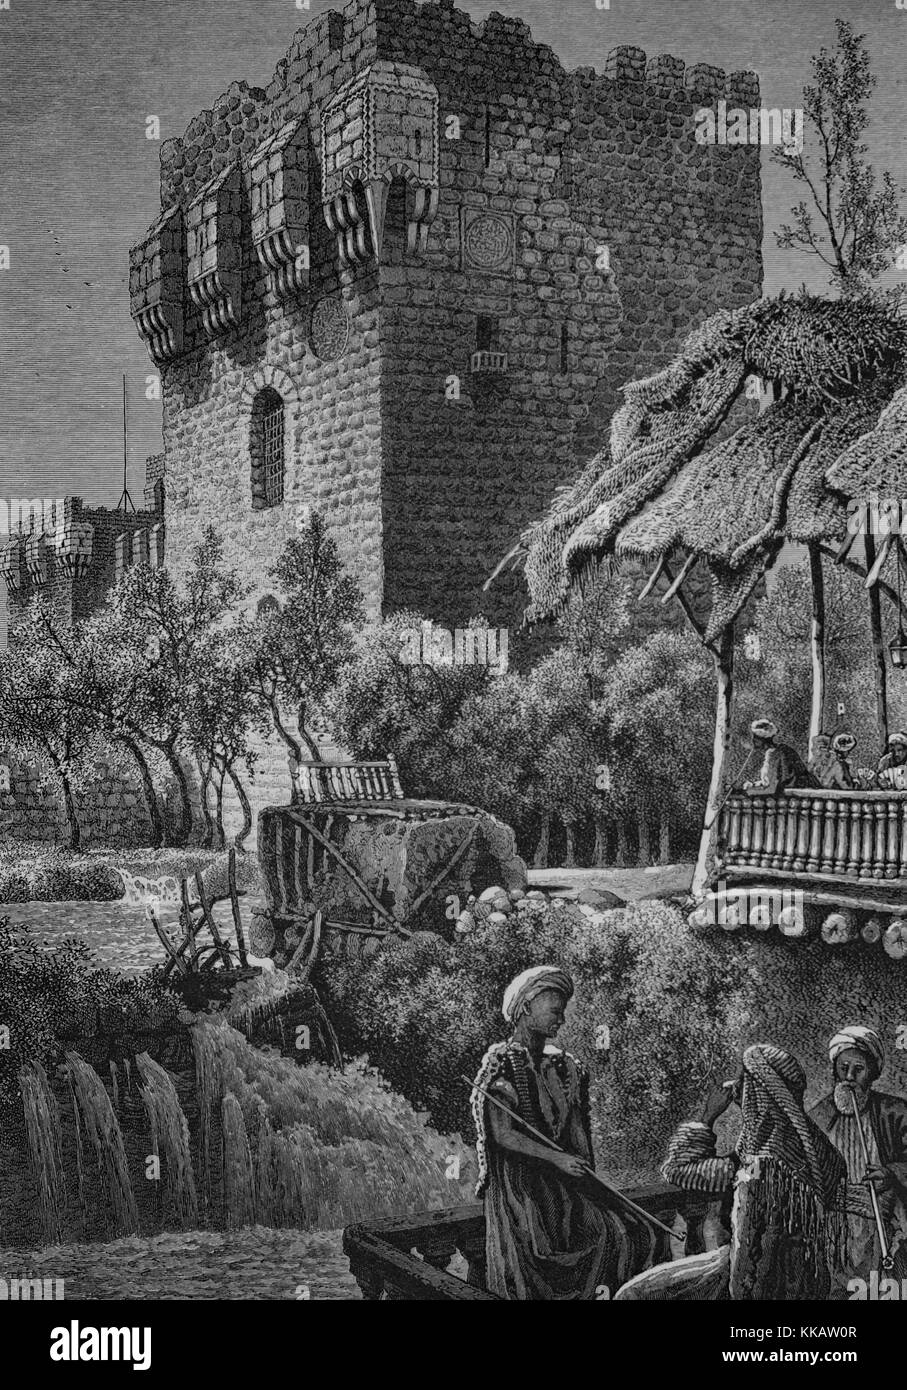 An engraving depicting the exterior of the Citadel of Damascus, fortifications began in that location in 1076 and - Stock Image